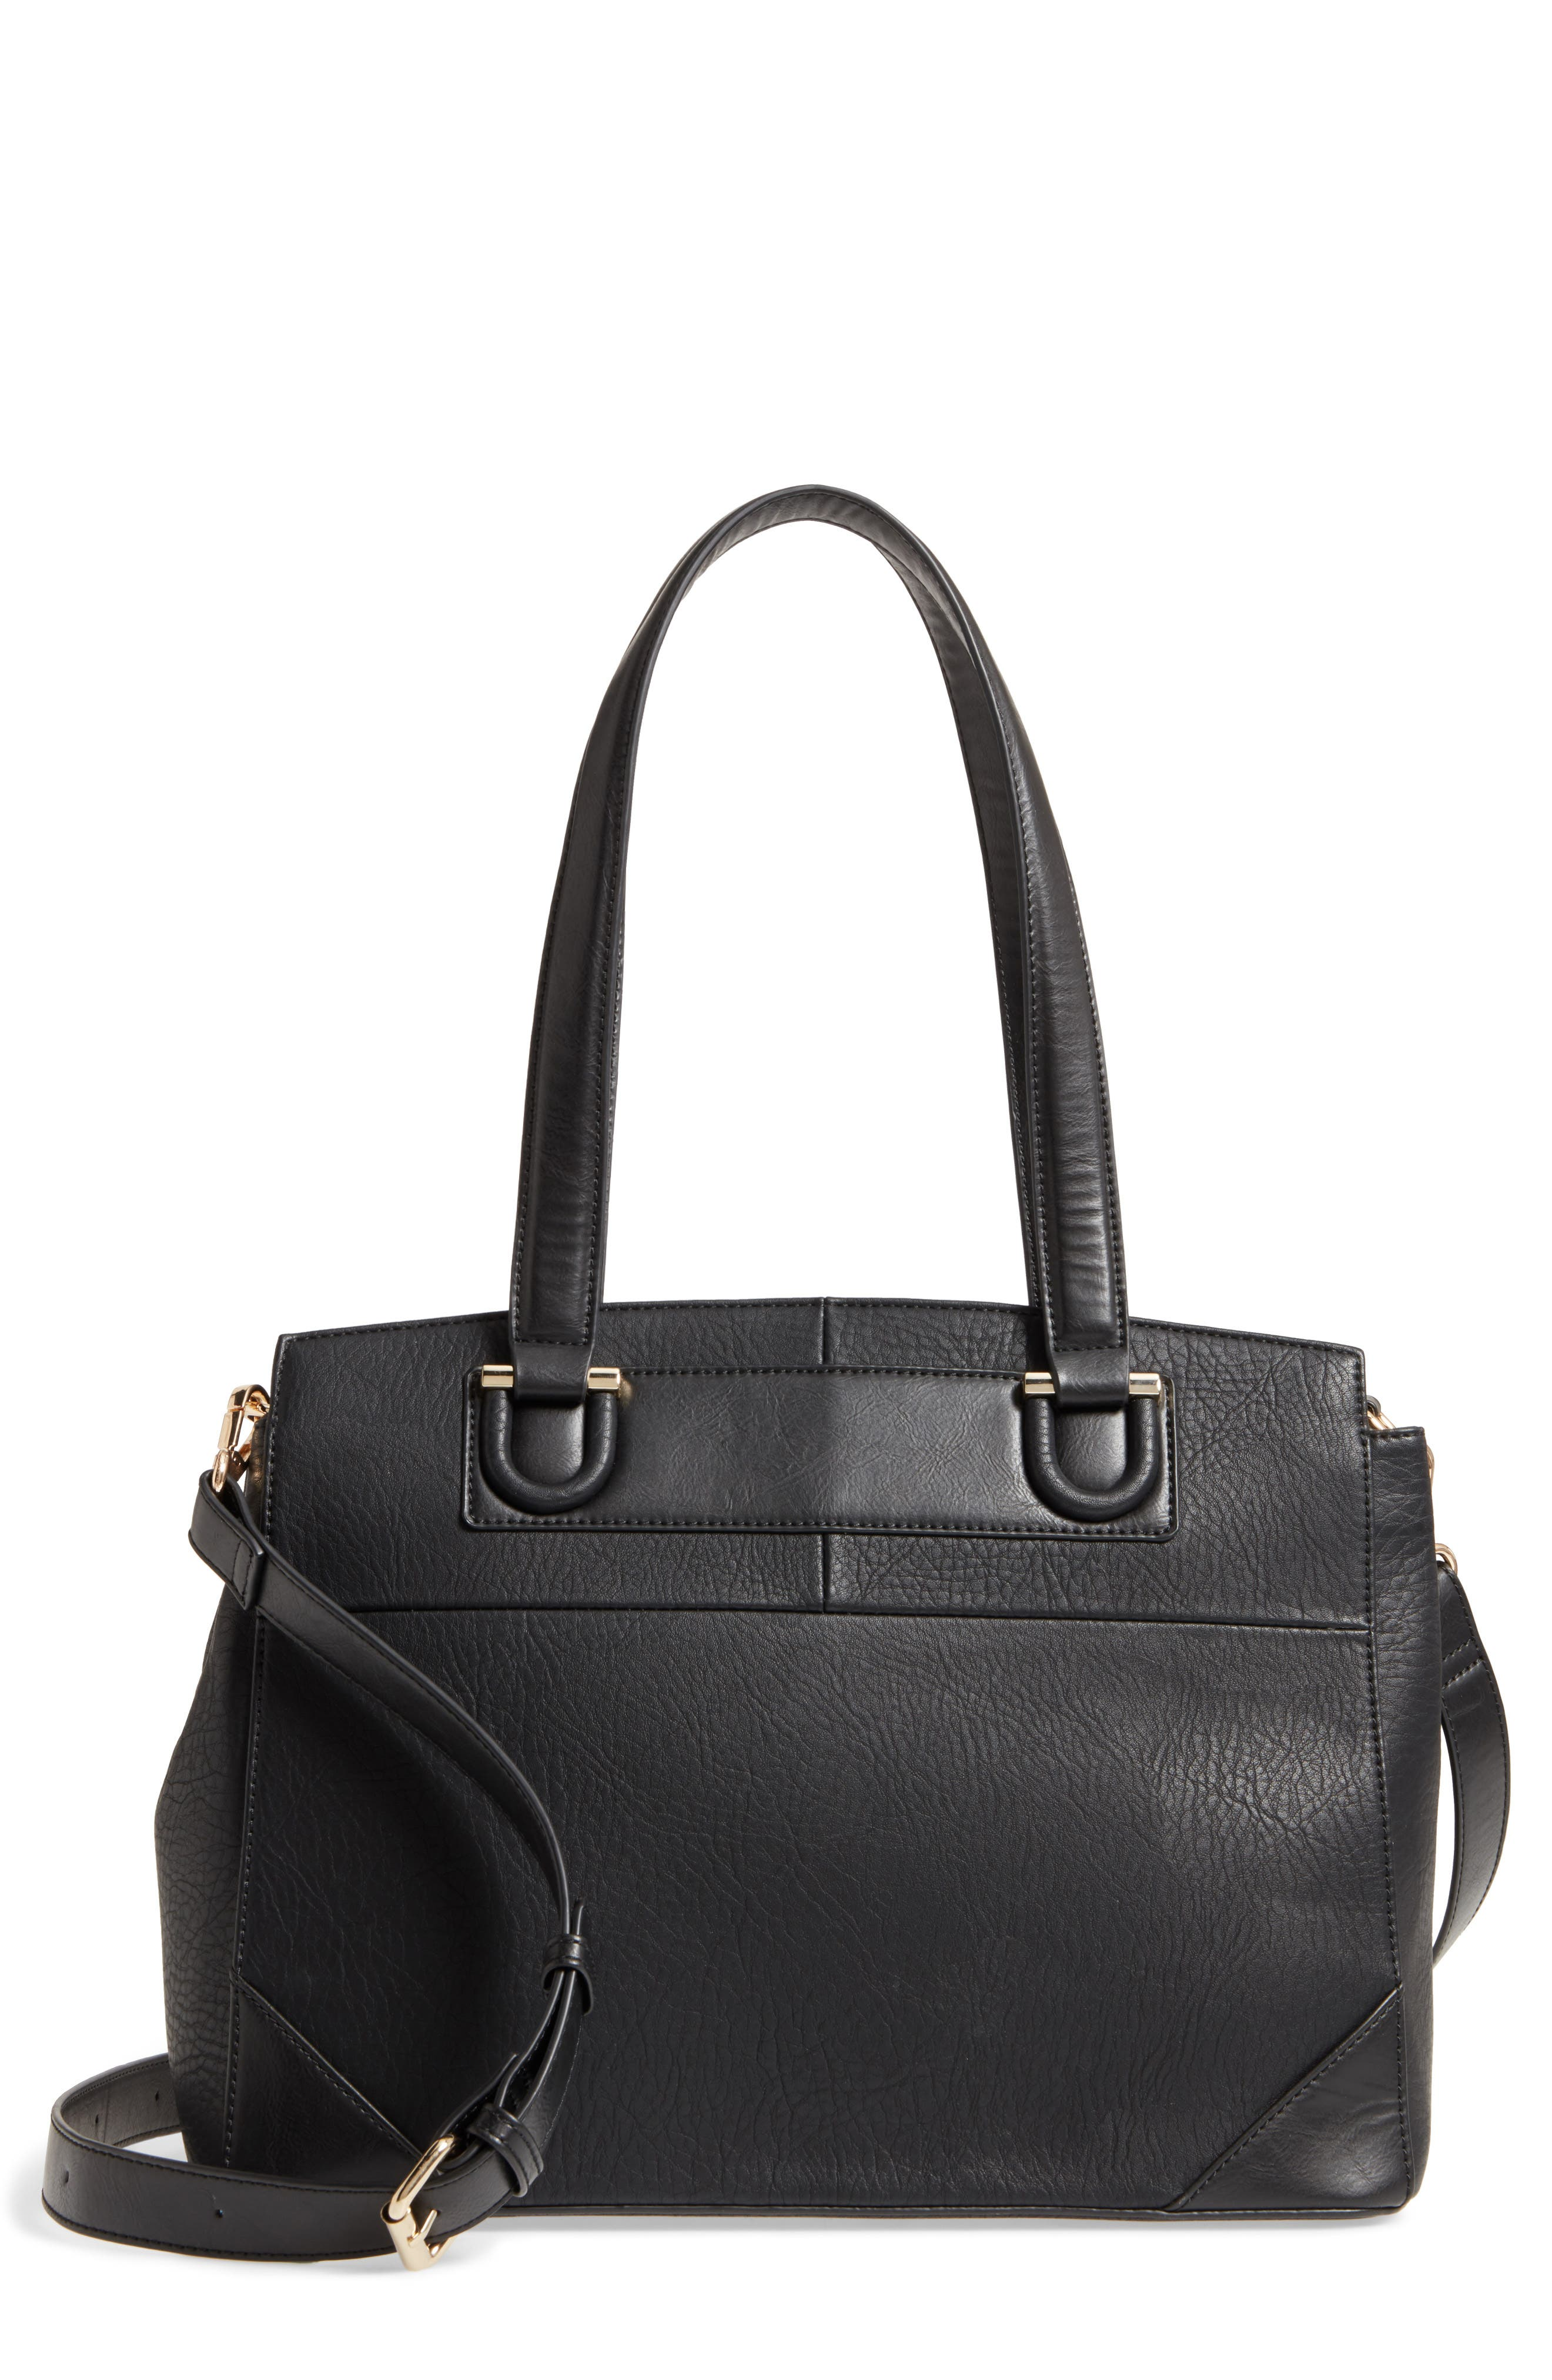 Alternate Image 1 Selected - Sole Society Sterling Faux Leather Satchel